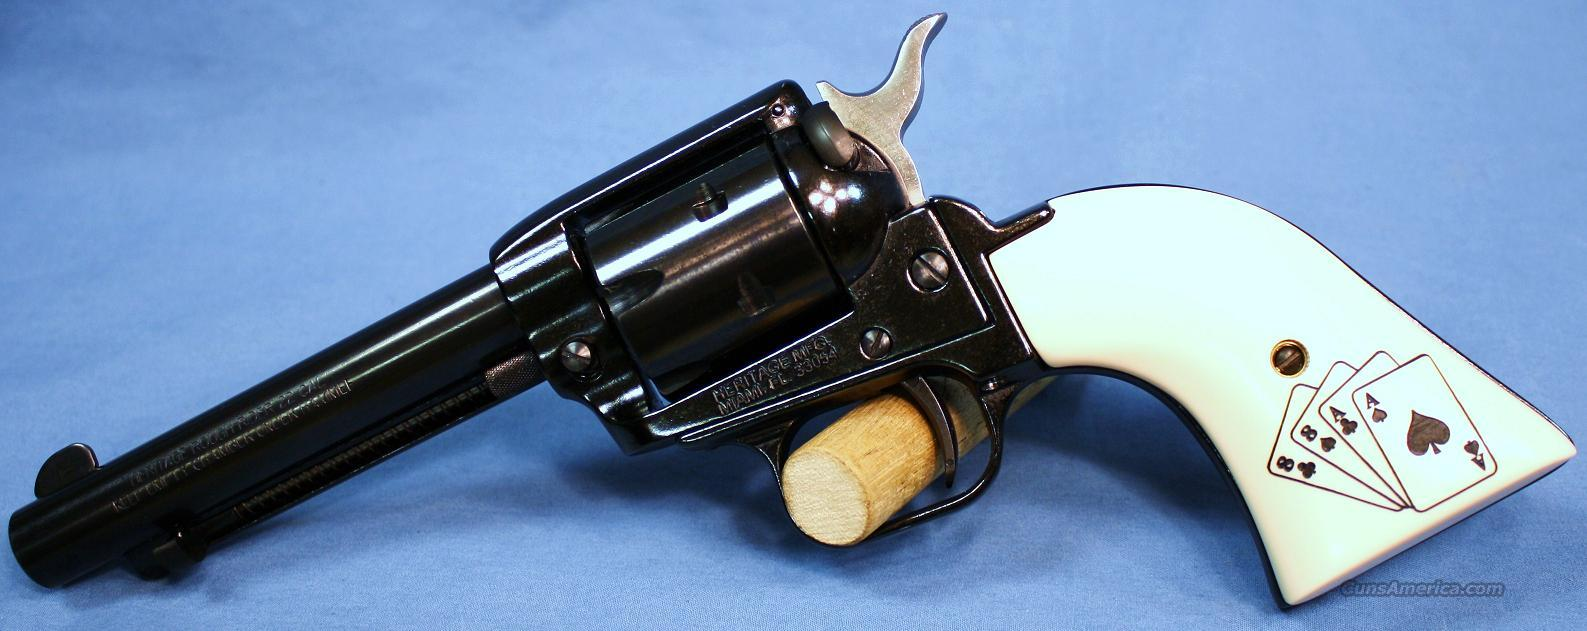 Heritage Rough Rider Aces and Eights Single Action Revolver .22LR  Guns > Pistols > H Misc Pistols